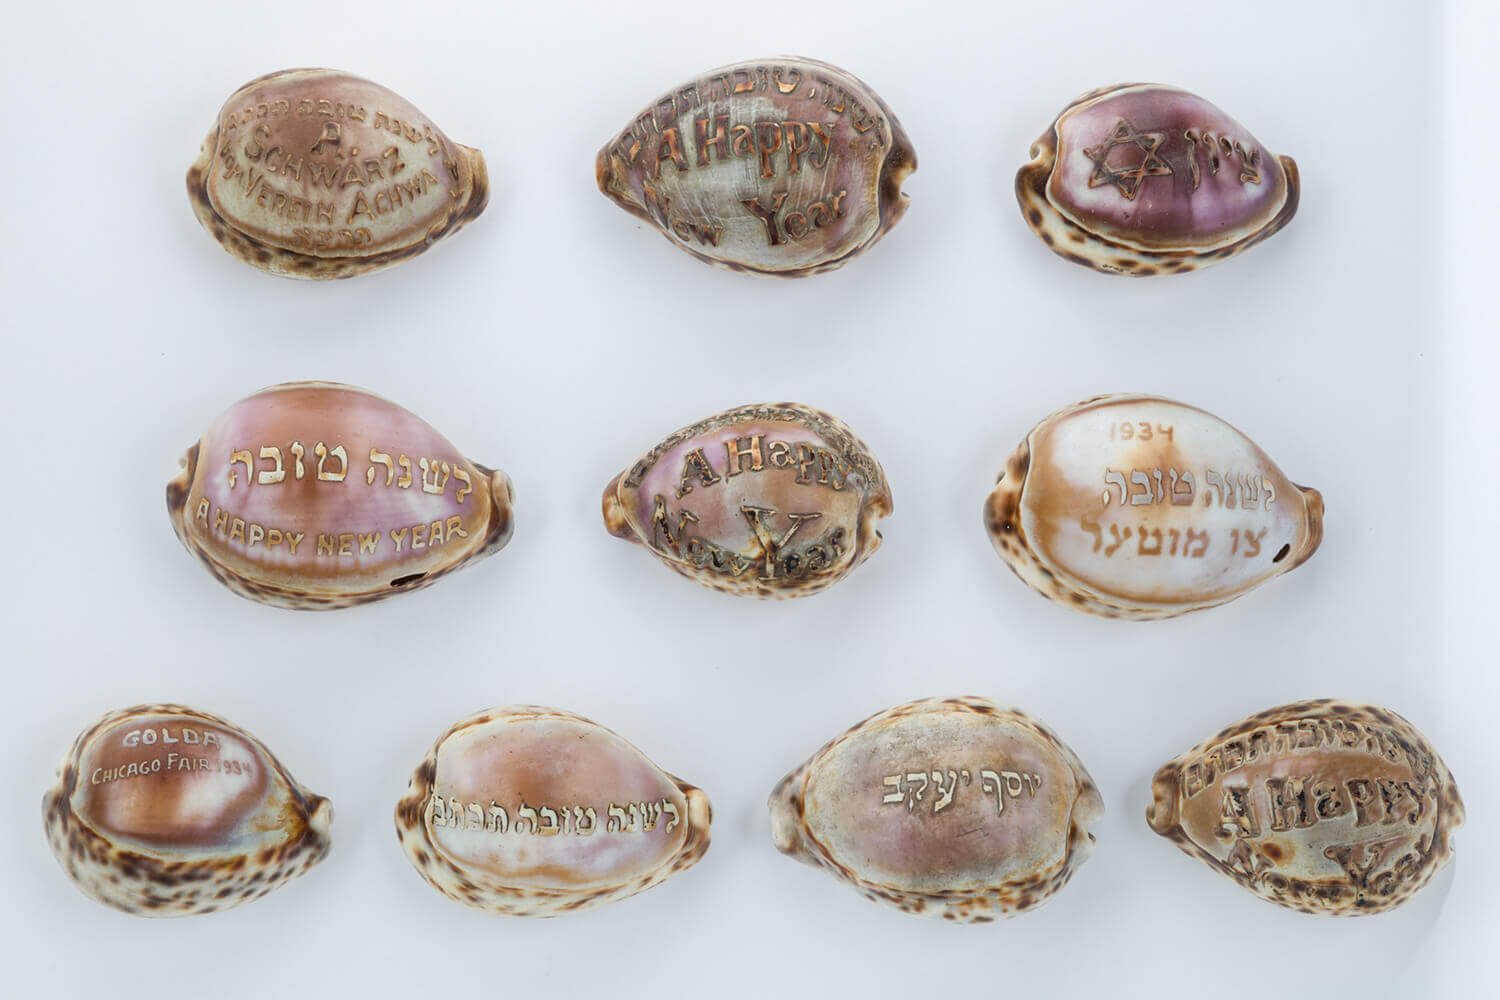 022. A COLLECTION OF TEN JUDAICA ENGRAVED COWRY SHELLS